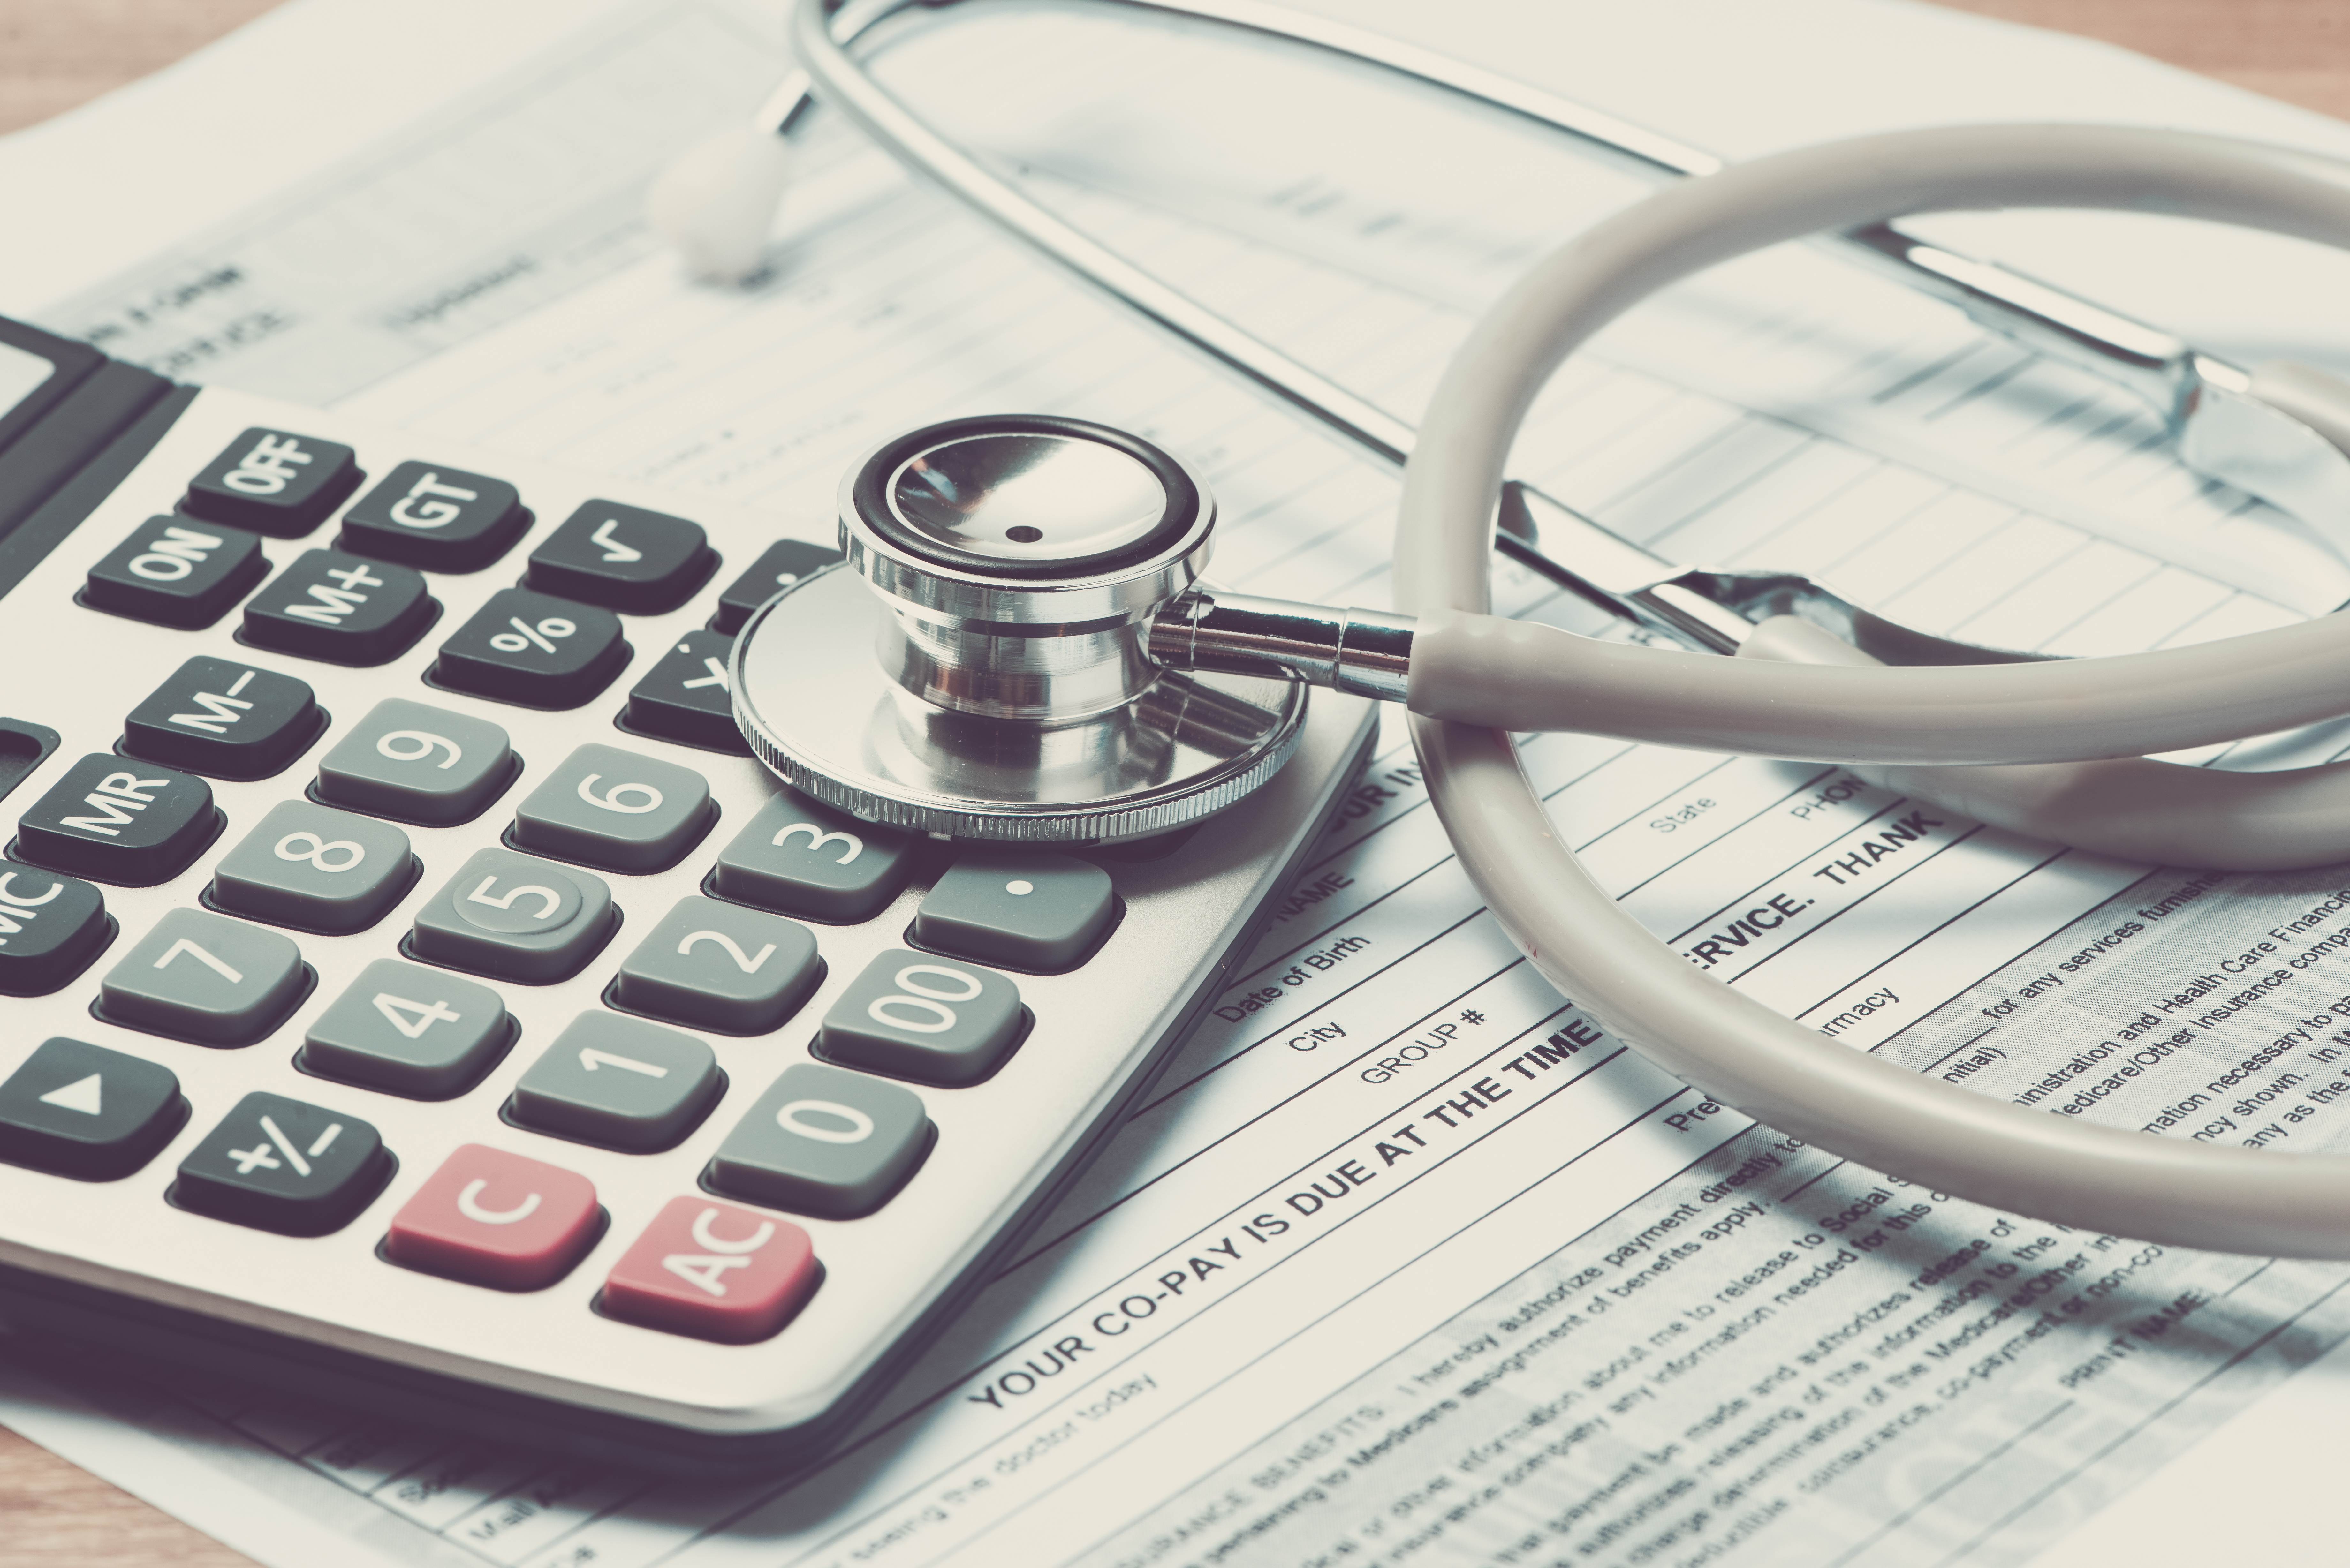 medical-accounts-receivable-management-Cosentus